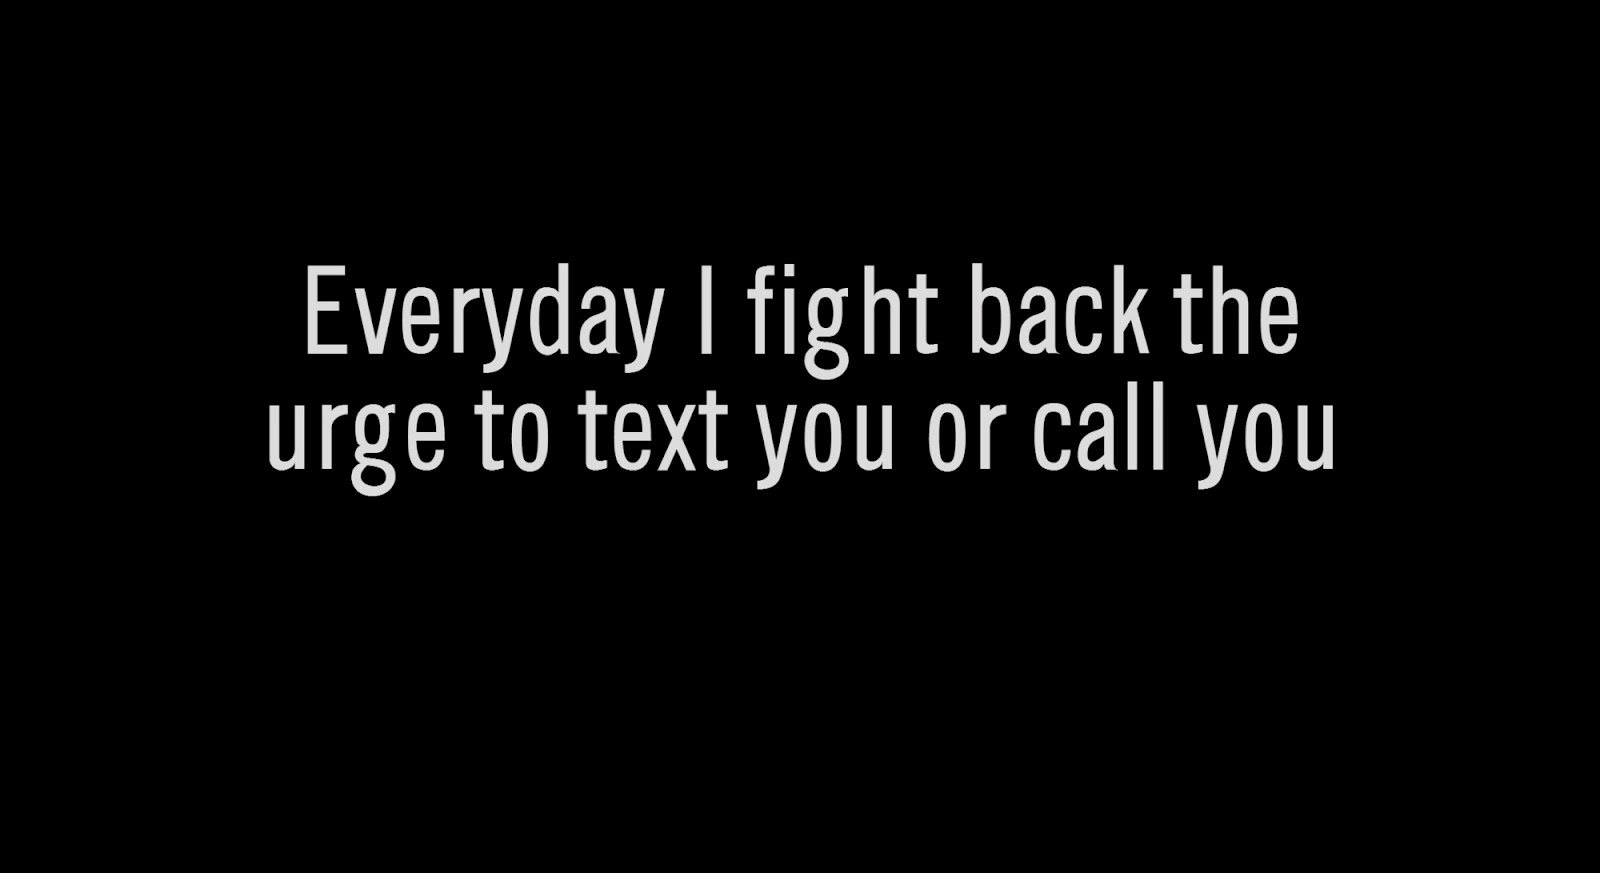 Everyday I fight back the urge to text you or call you